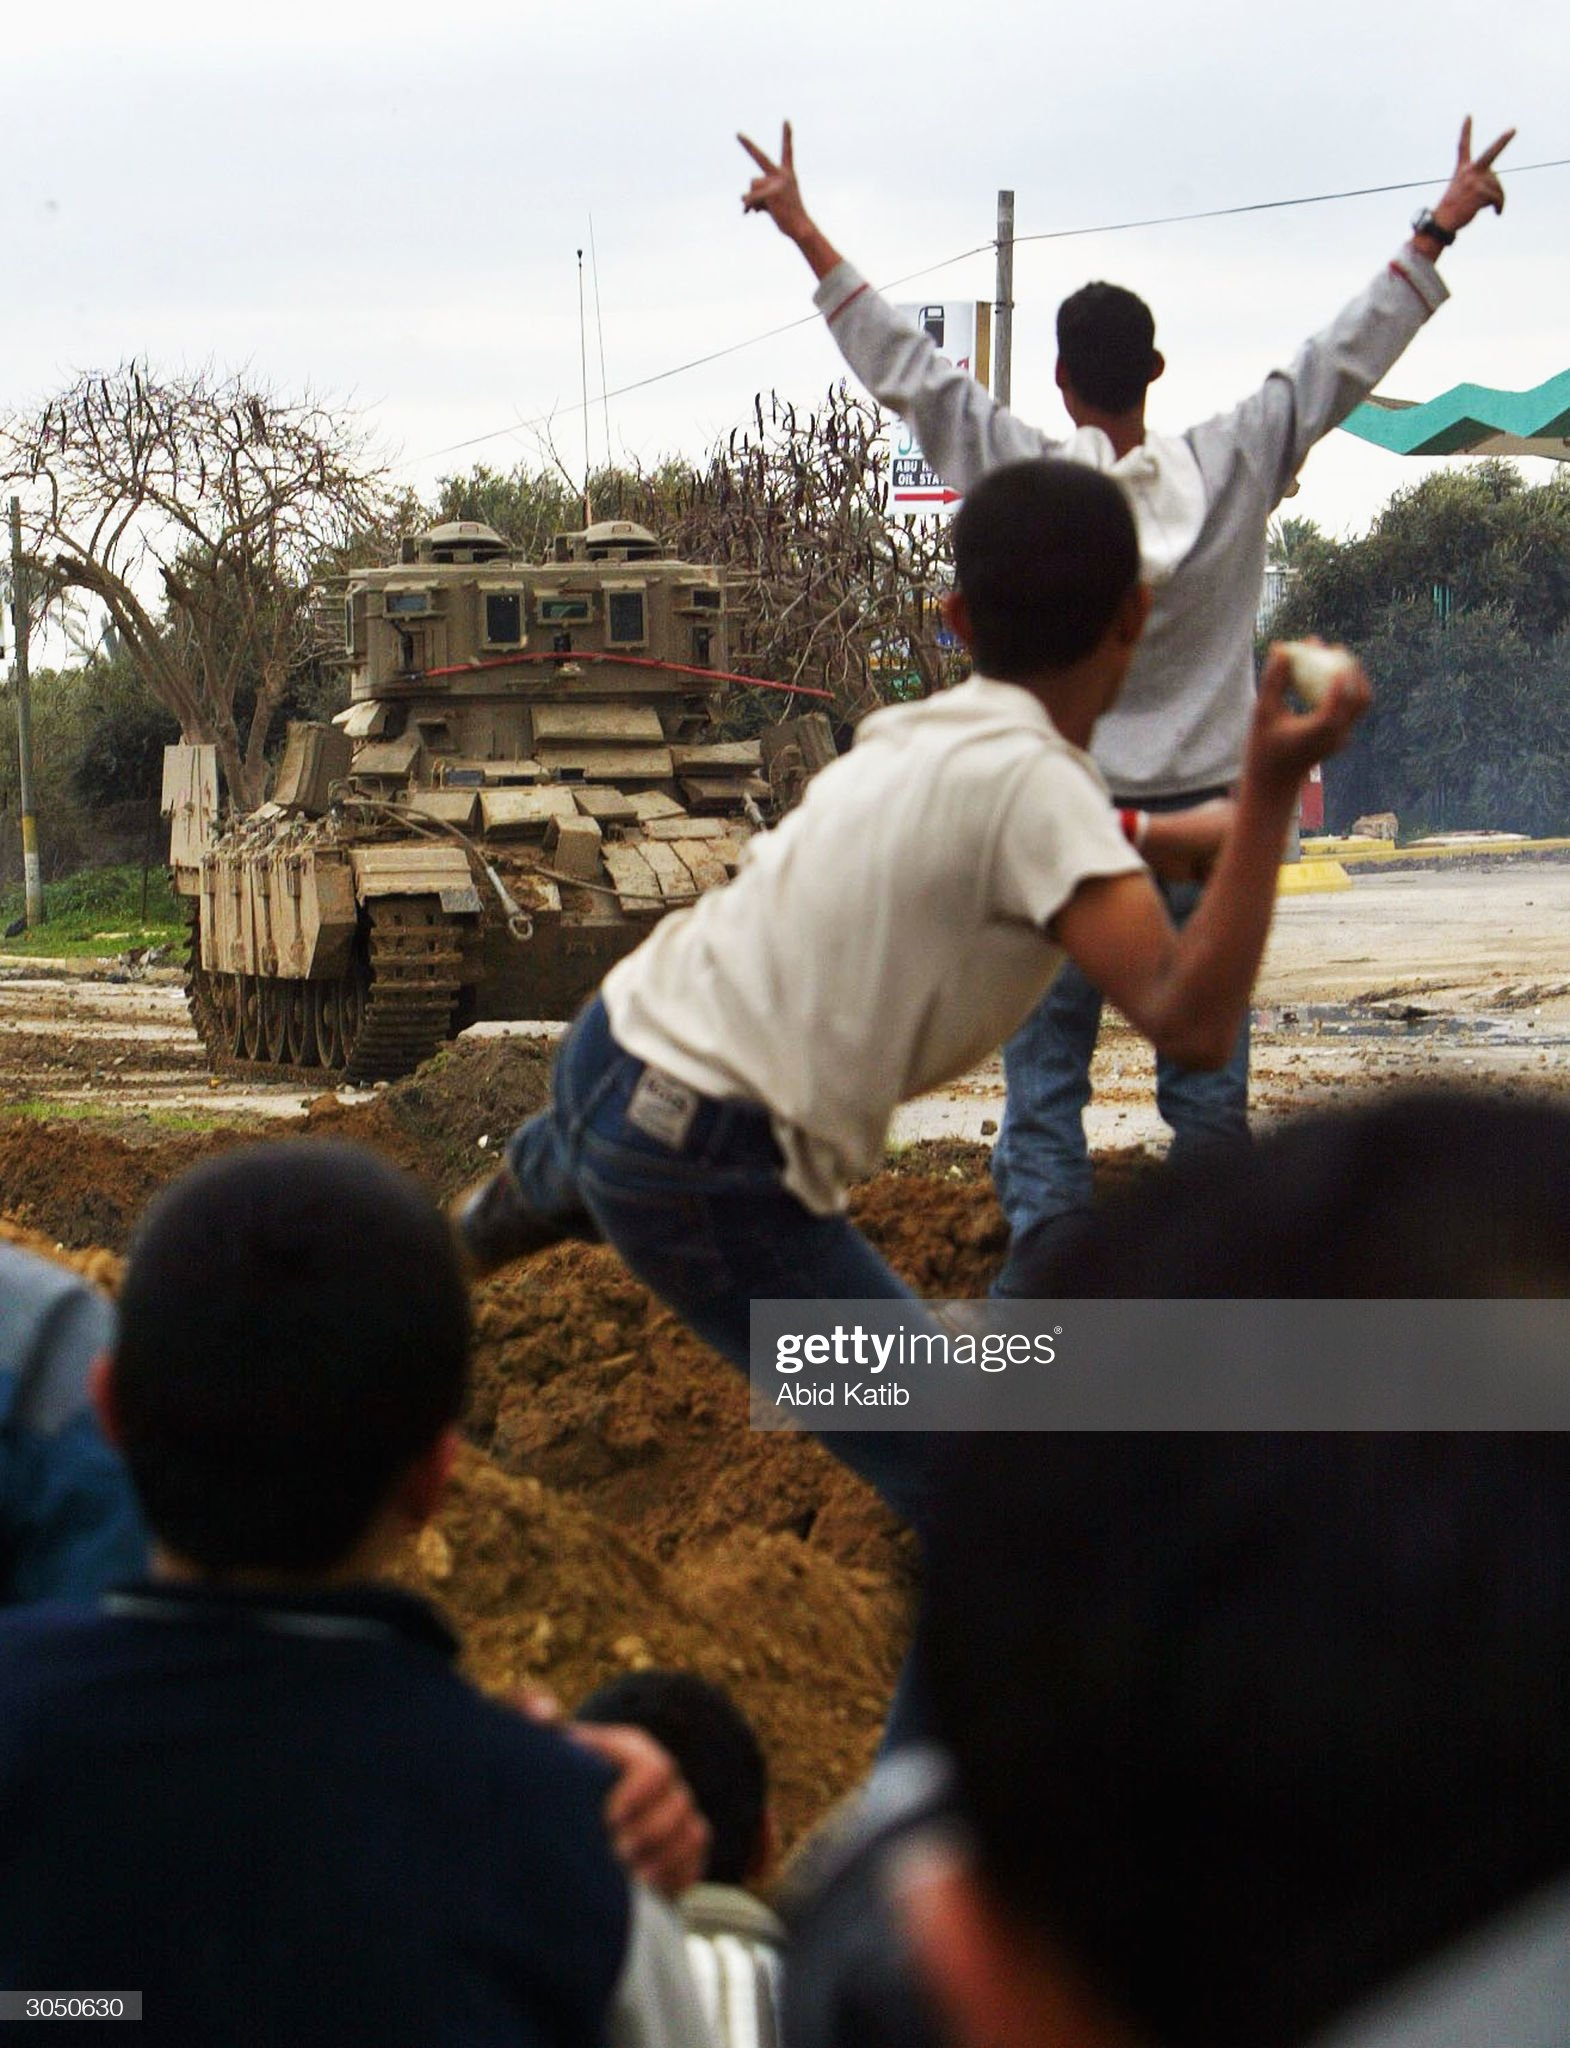 https://media.gettyimages.com/photos/palestinians-throw-stones-towards-israeli-tanks-during-an-israeli-to-picture-id3050630?s=2048x2048